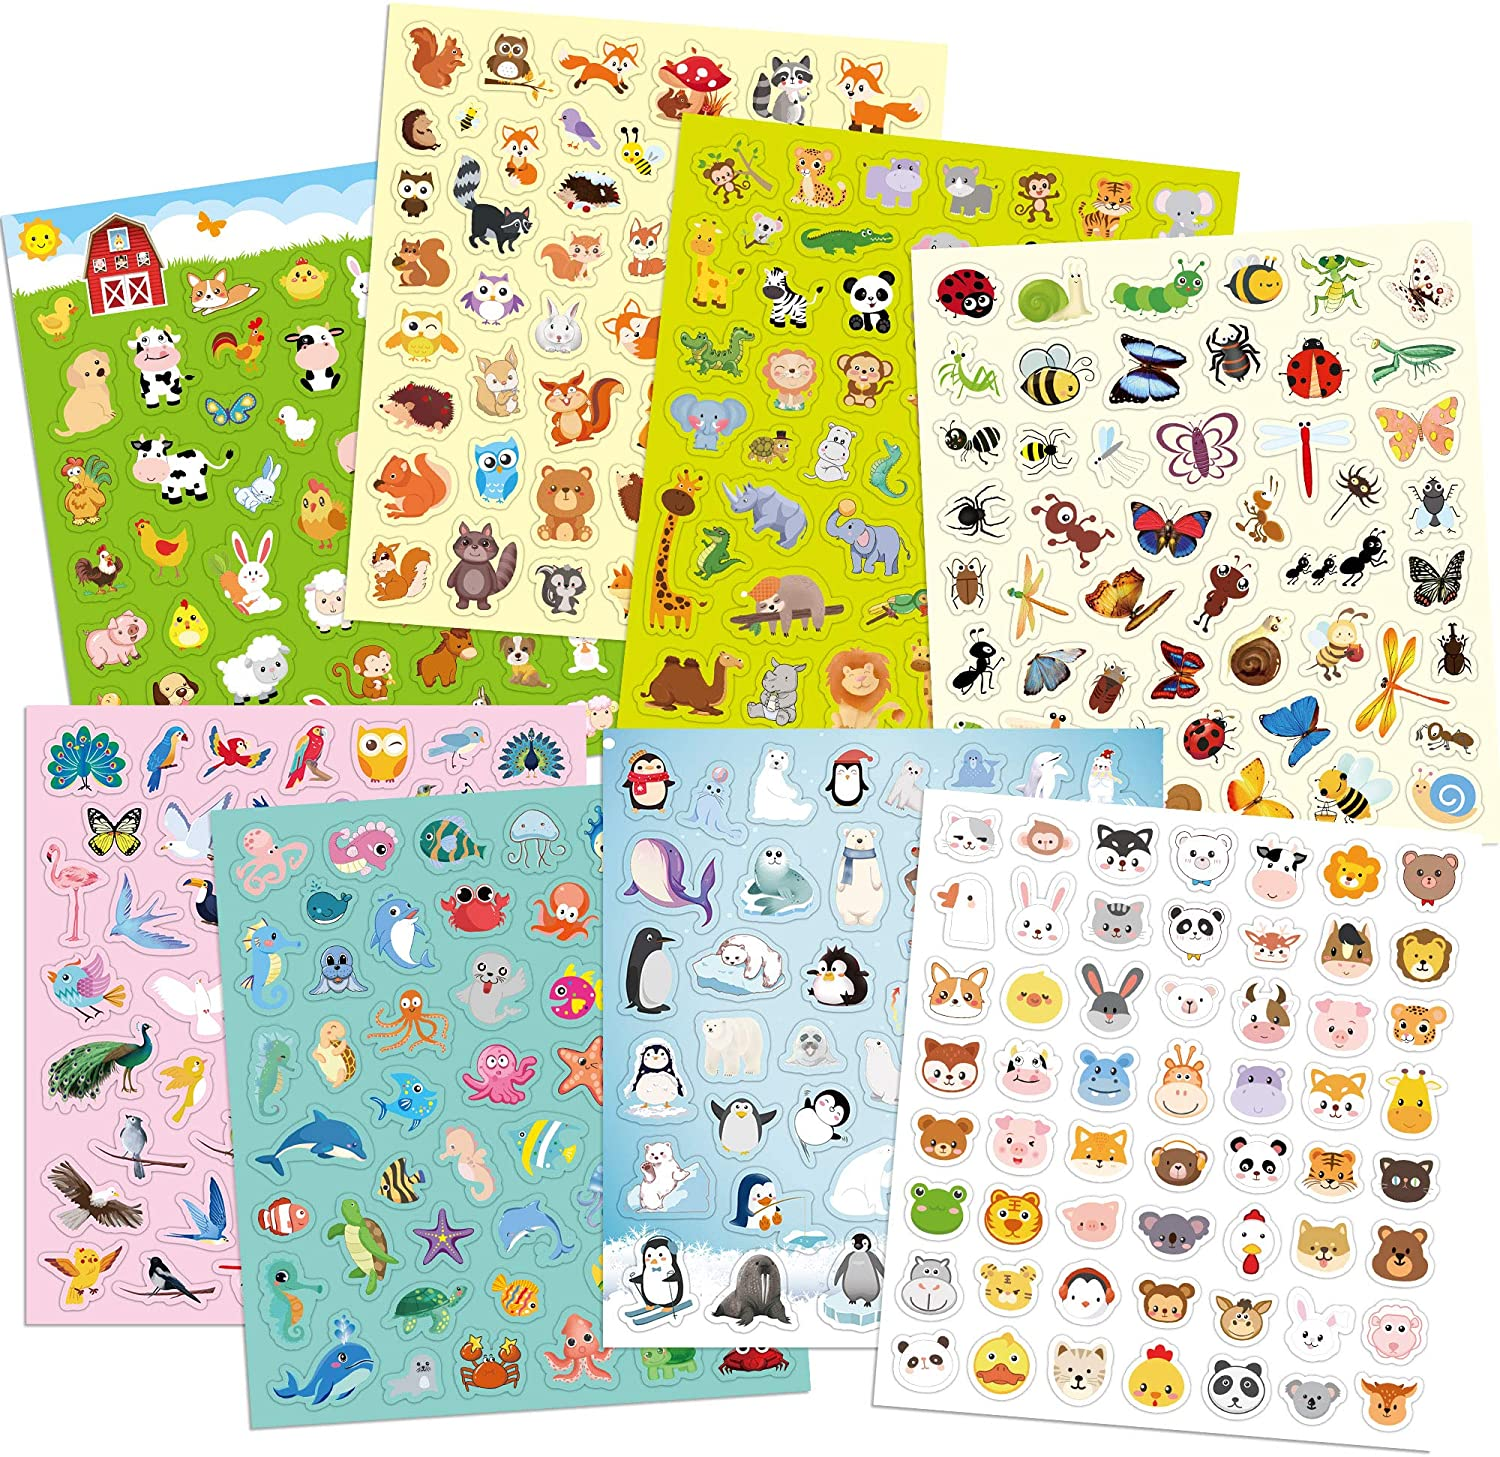 Animal Stickers for Kids Assortment Set 800 Count 16 Sheets 8 Themes Collection for Children Craft Party Favors